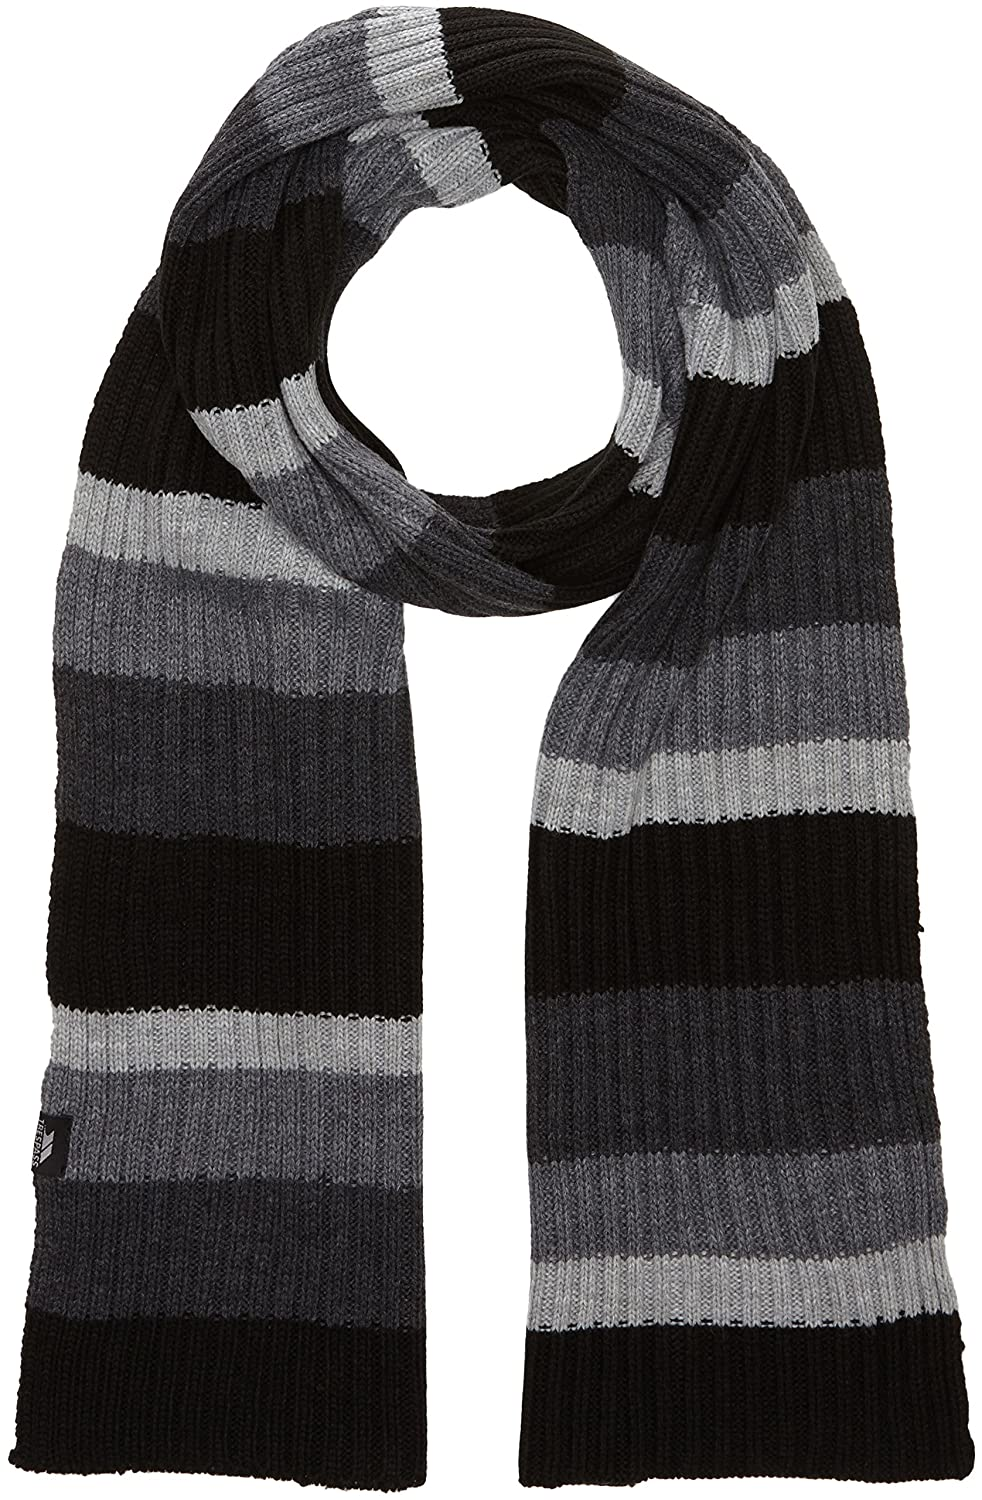 Trespass Mens Rowen Striped Winter Scarf (One Size) (Black) MAHSSCH20001_BLKEACH